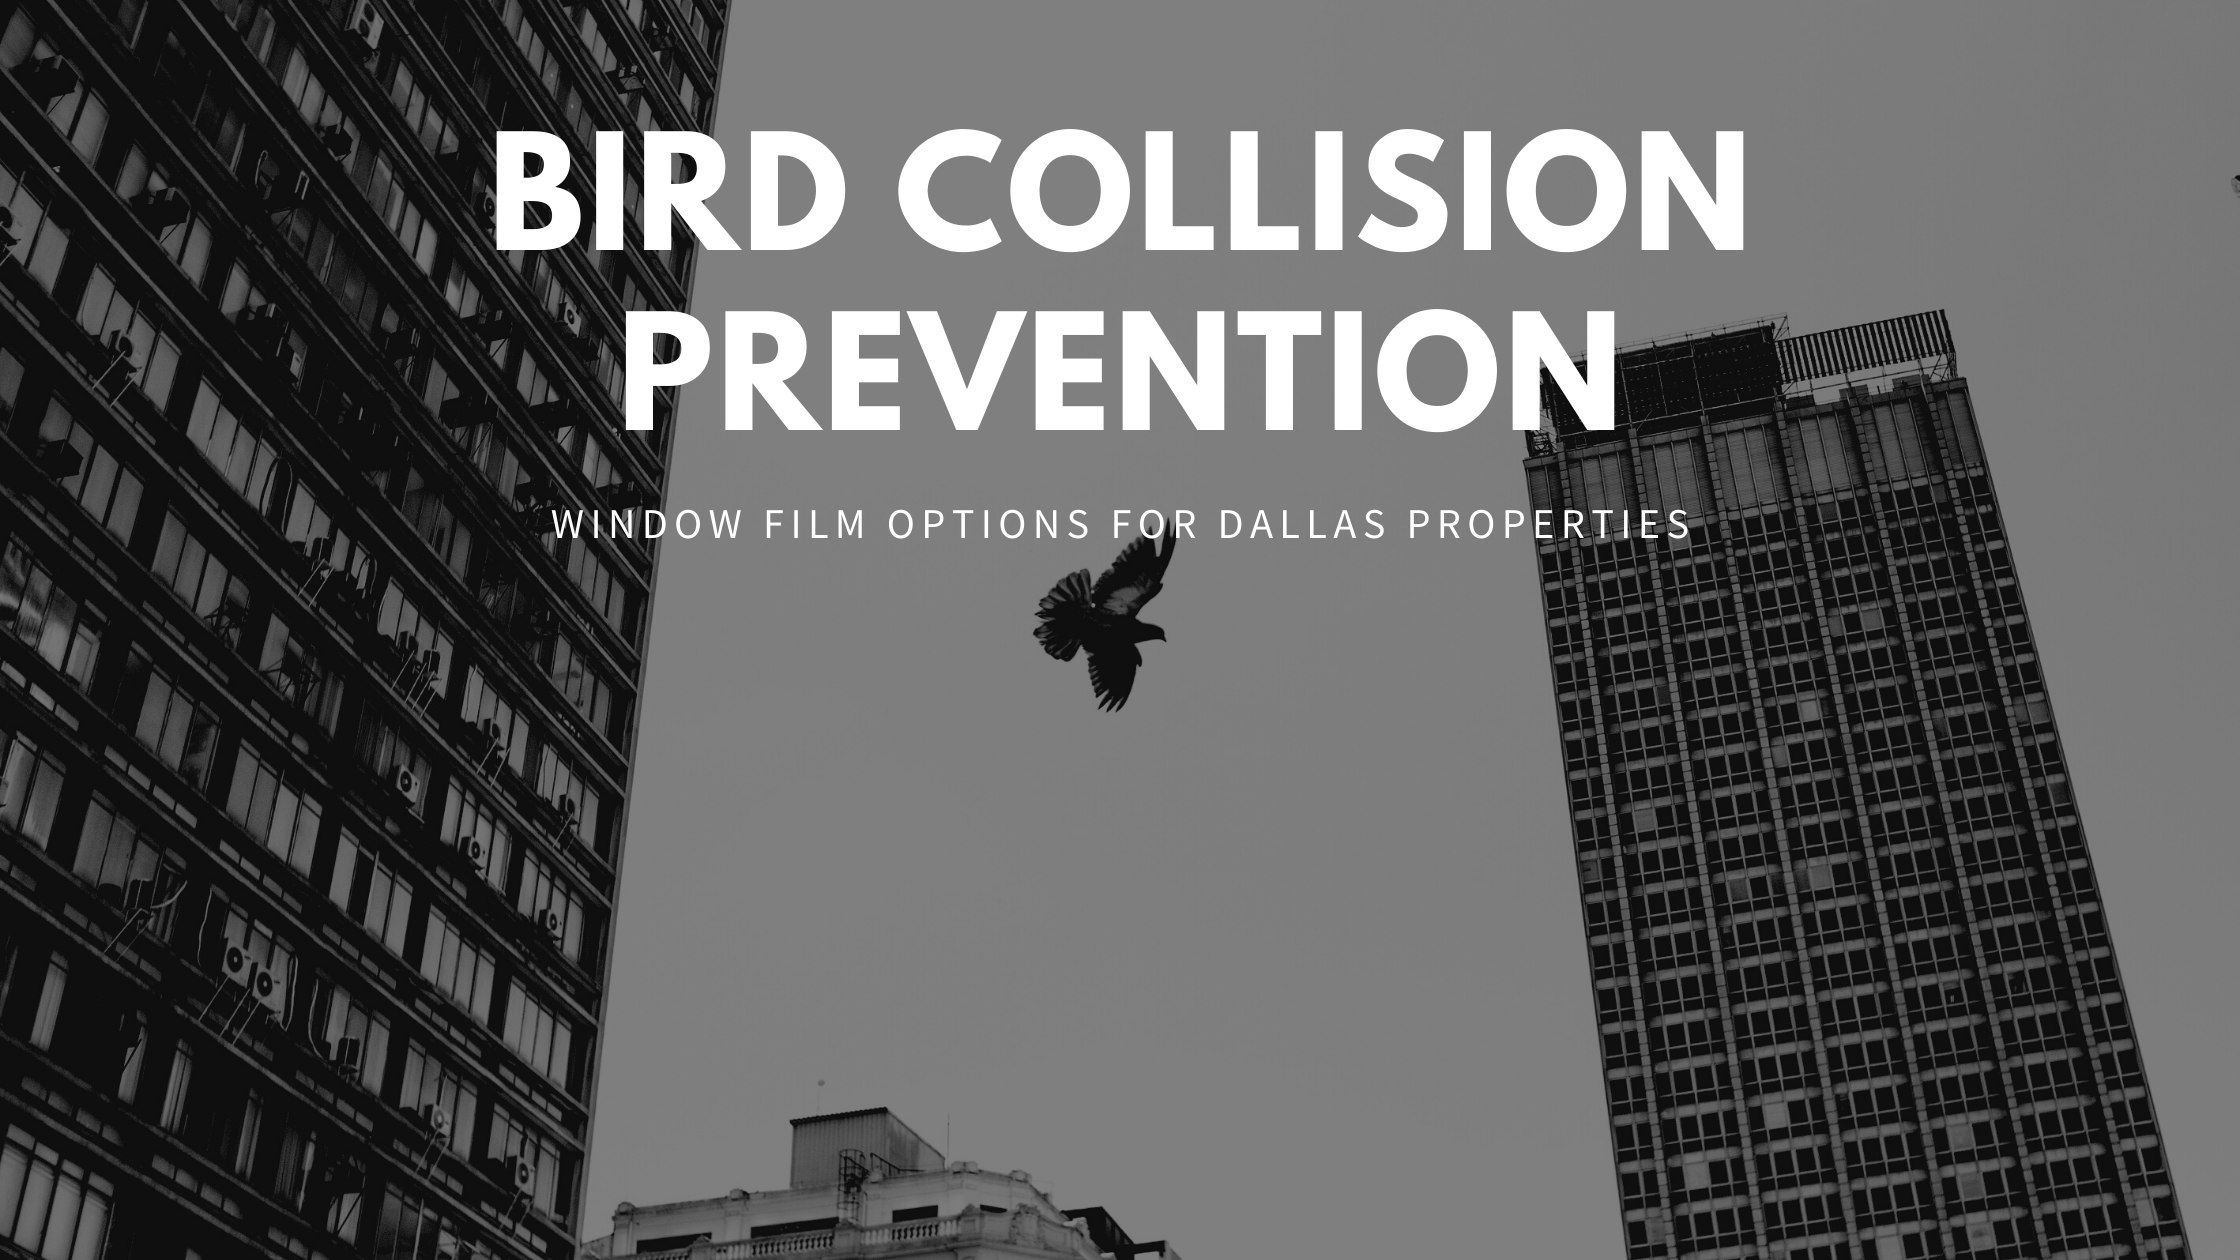 Bird Collision Prevention Window Film Options for Dallas Properties